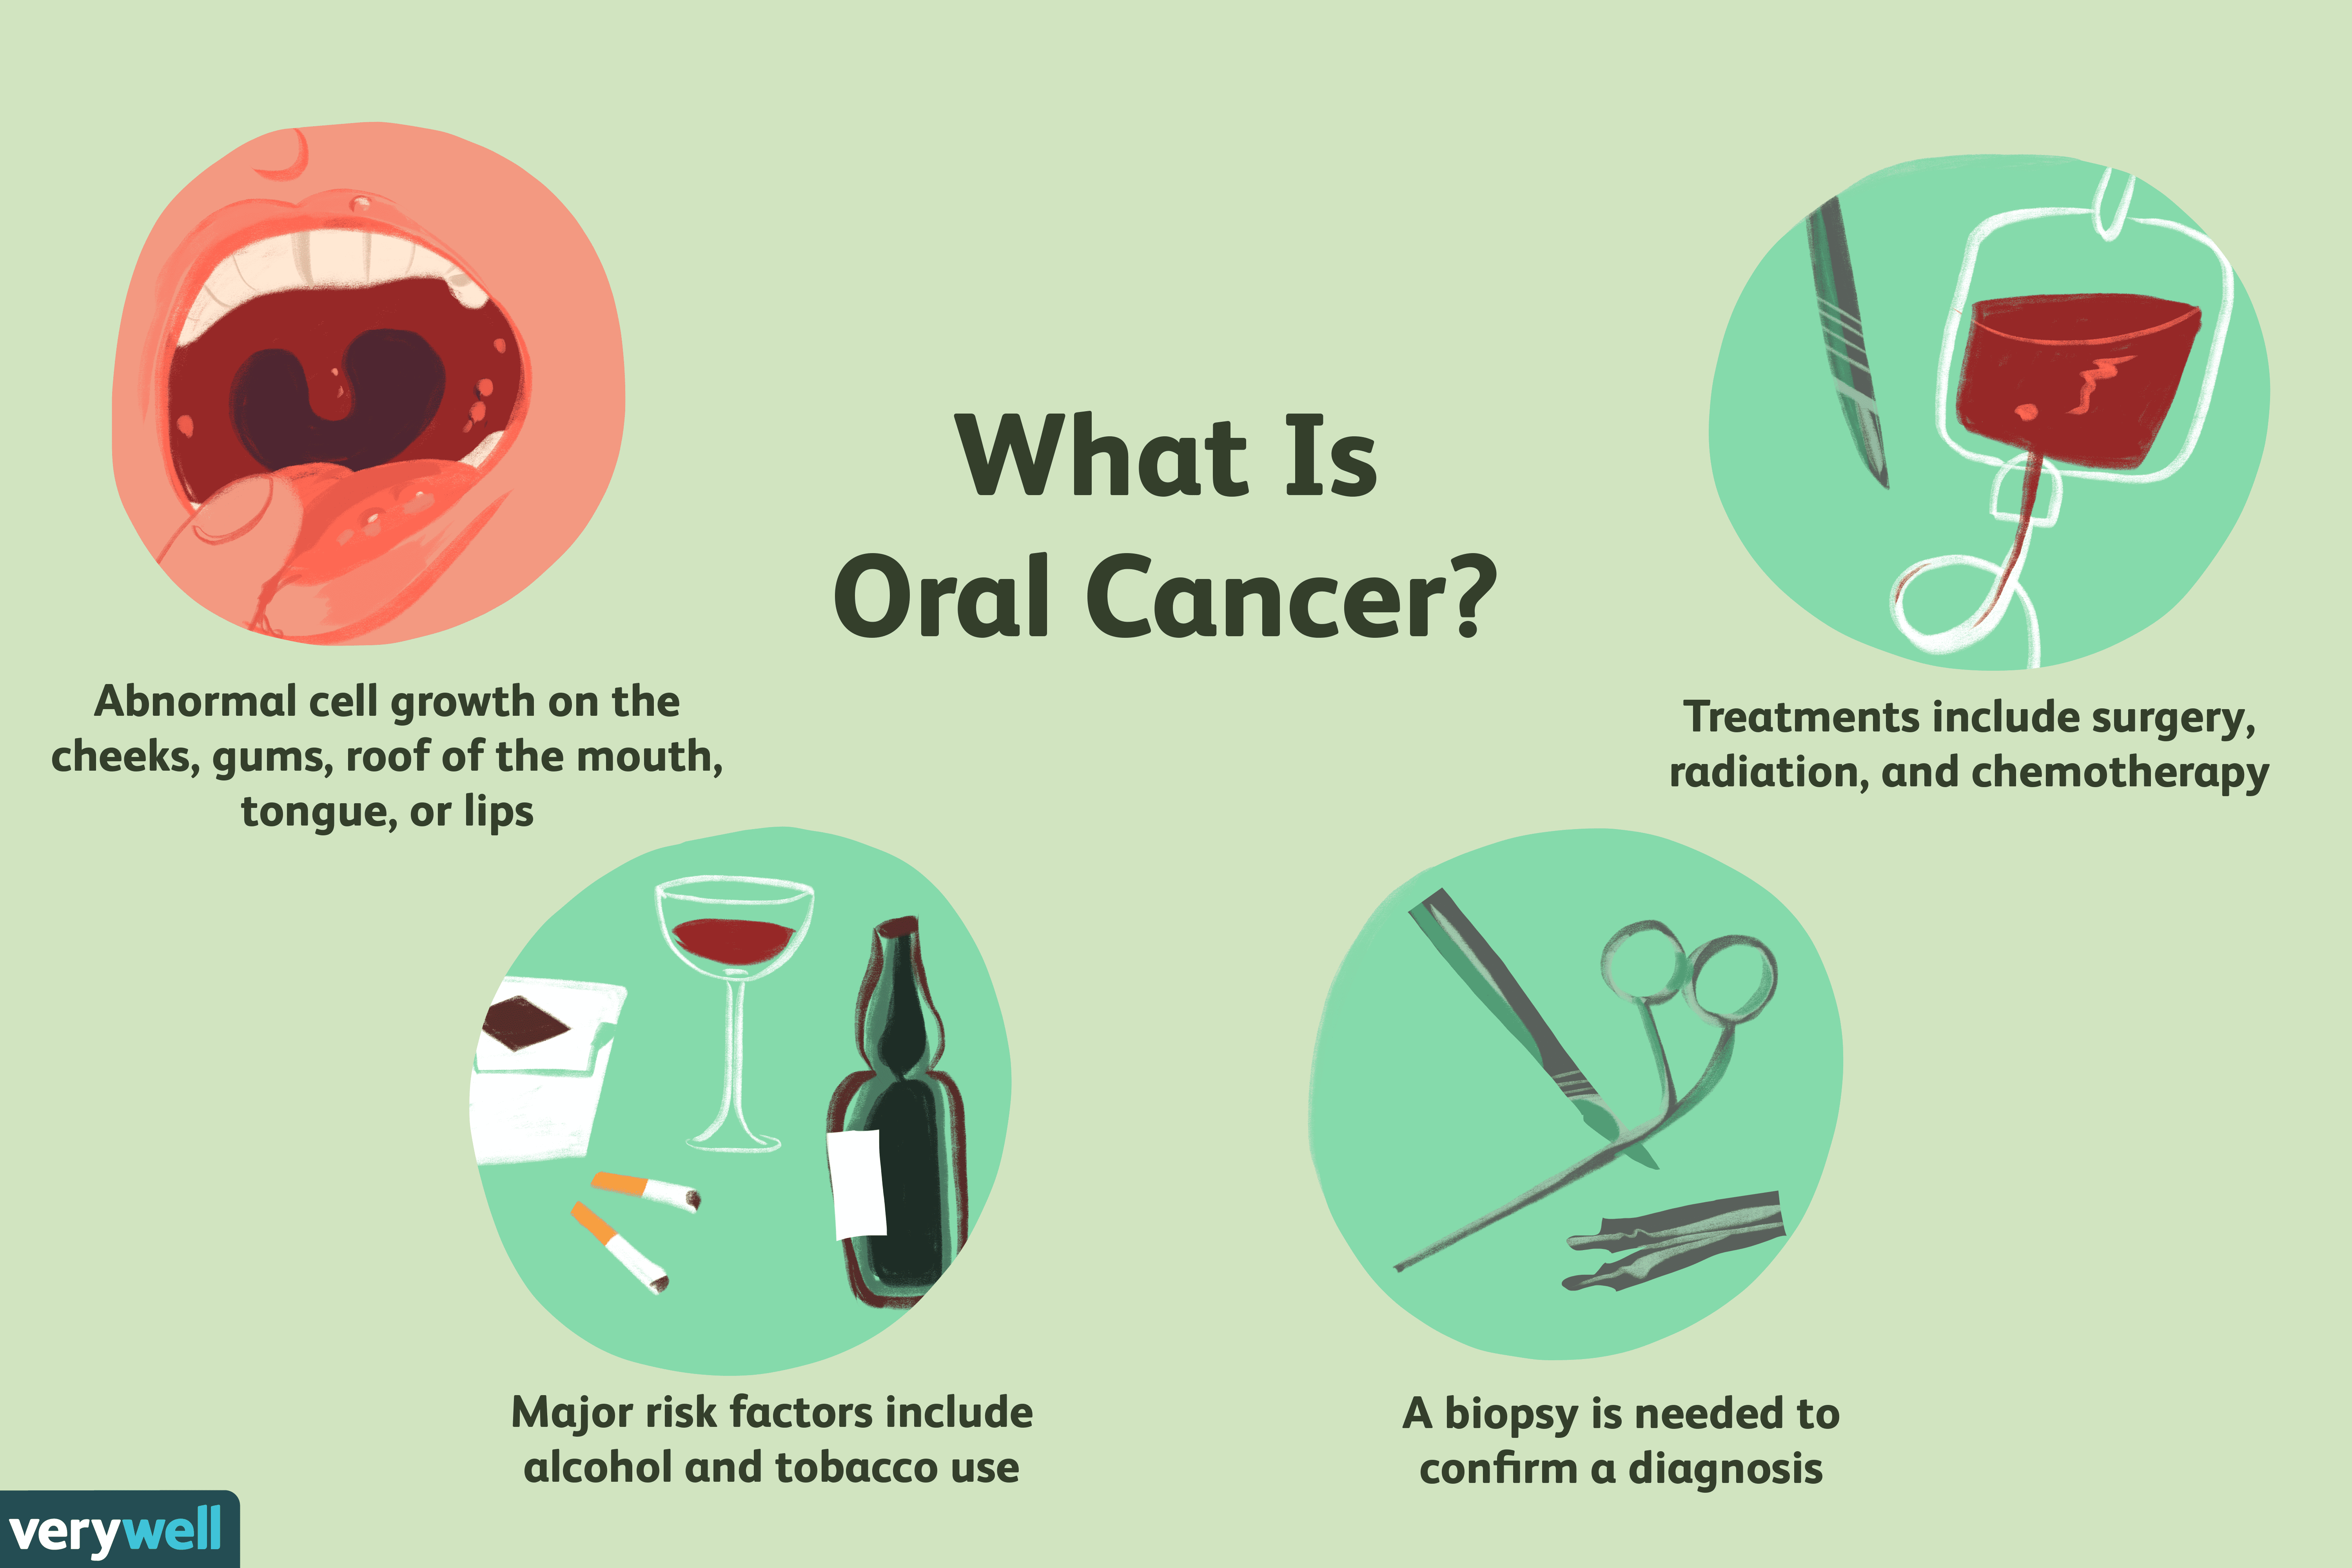 hpv causes oropharyngeal cancer)